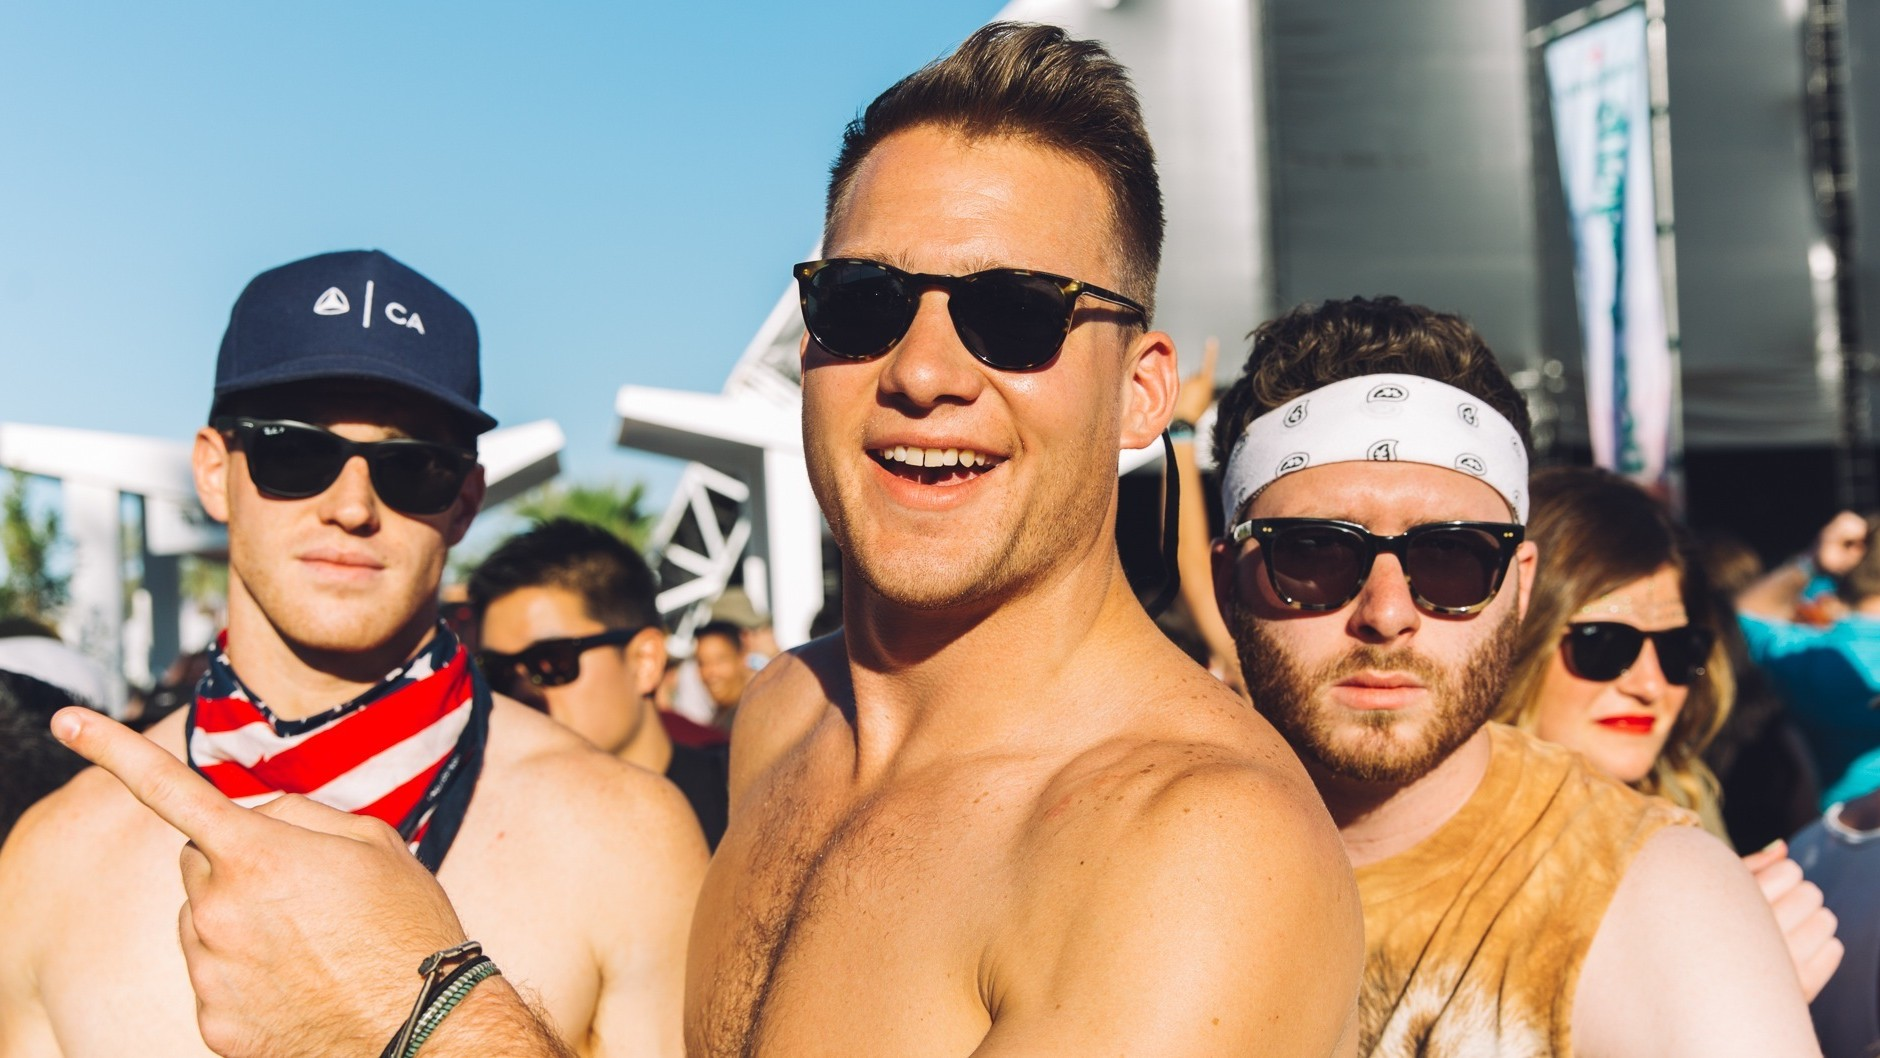 What Do Coachella's EDM Bros Think About EDM Bros?